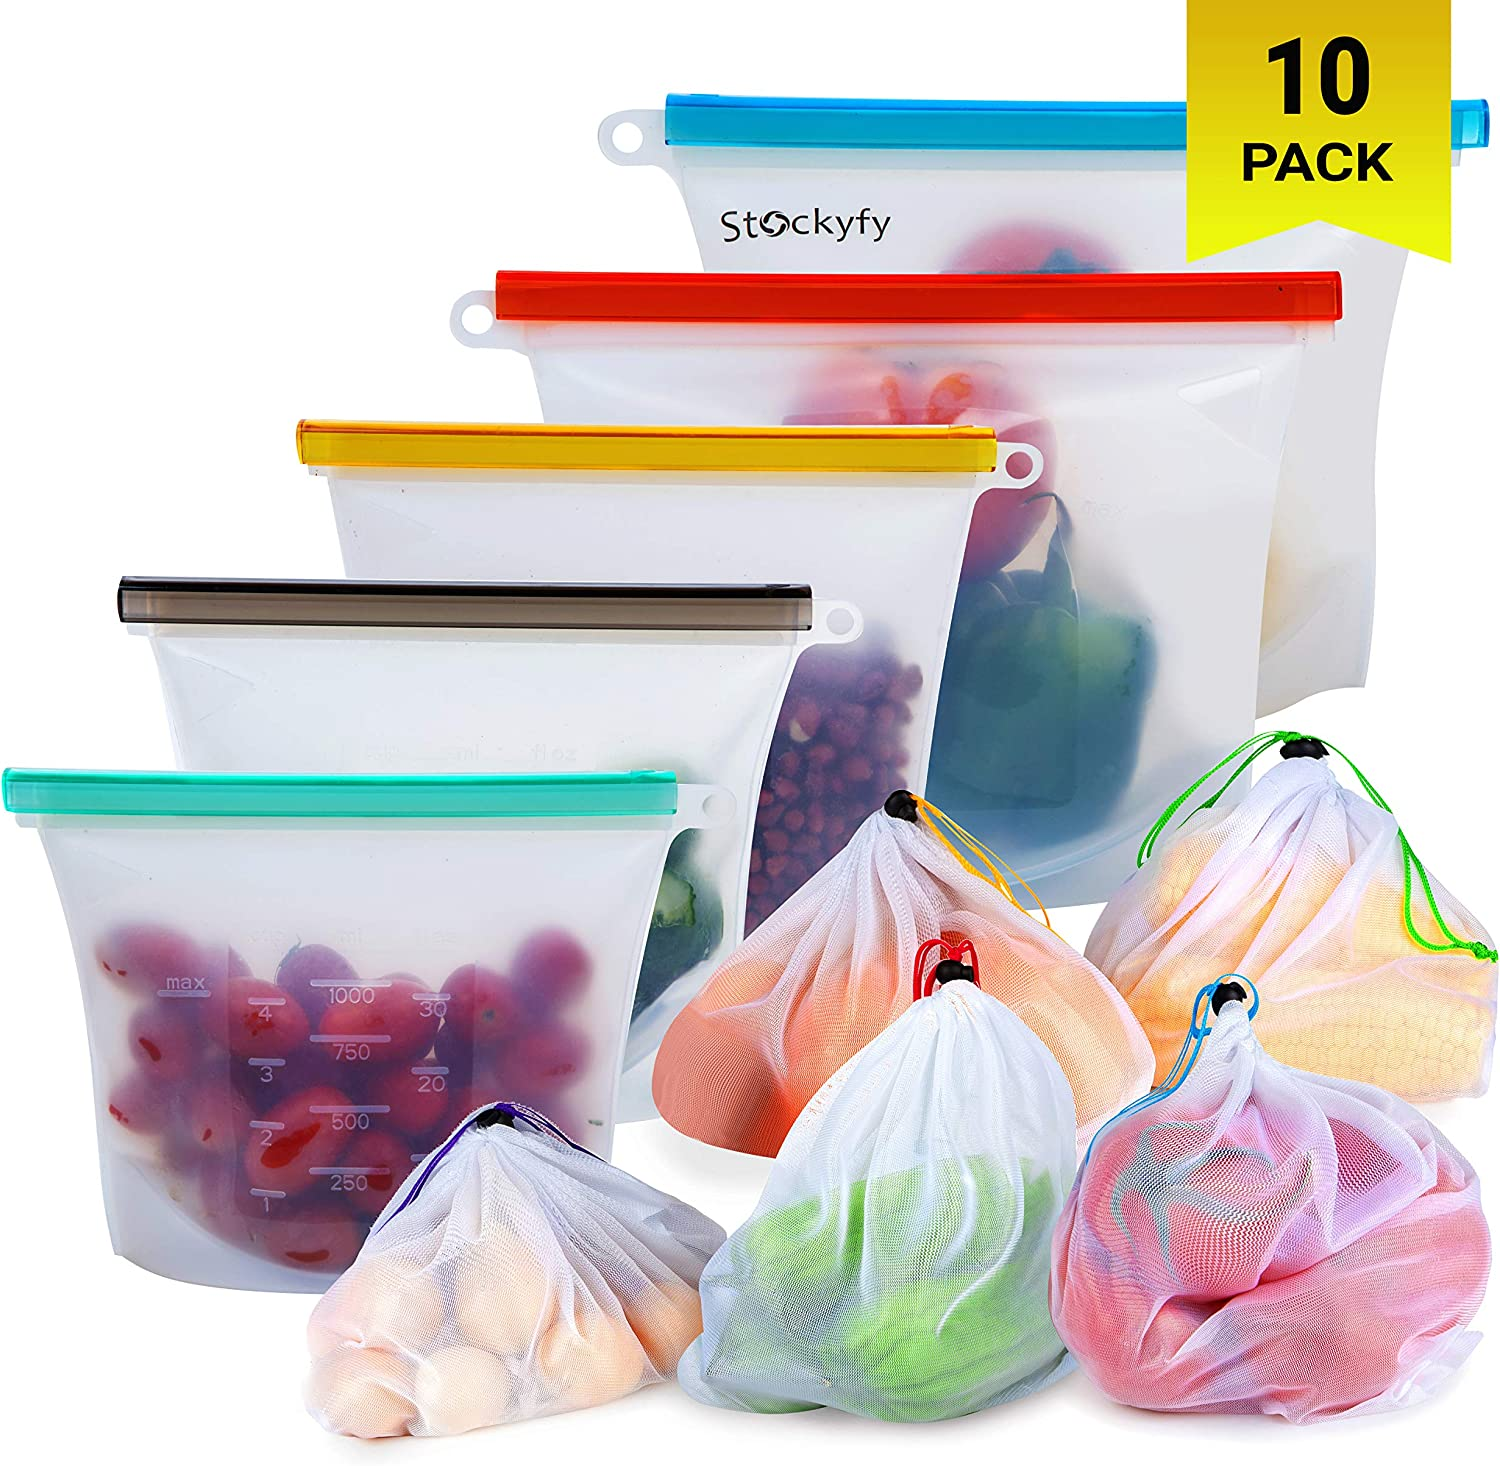 Reusable Silicone Food Storage Bags with Mesh Produce Bags (10-pack) Eco Friendly Food Storage Meal Prep | Freezer Containers Airtight Lunch Bags preserving cooking Kitchen Saver